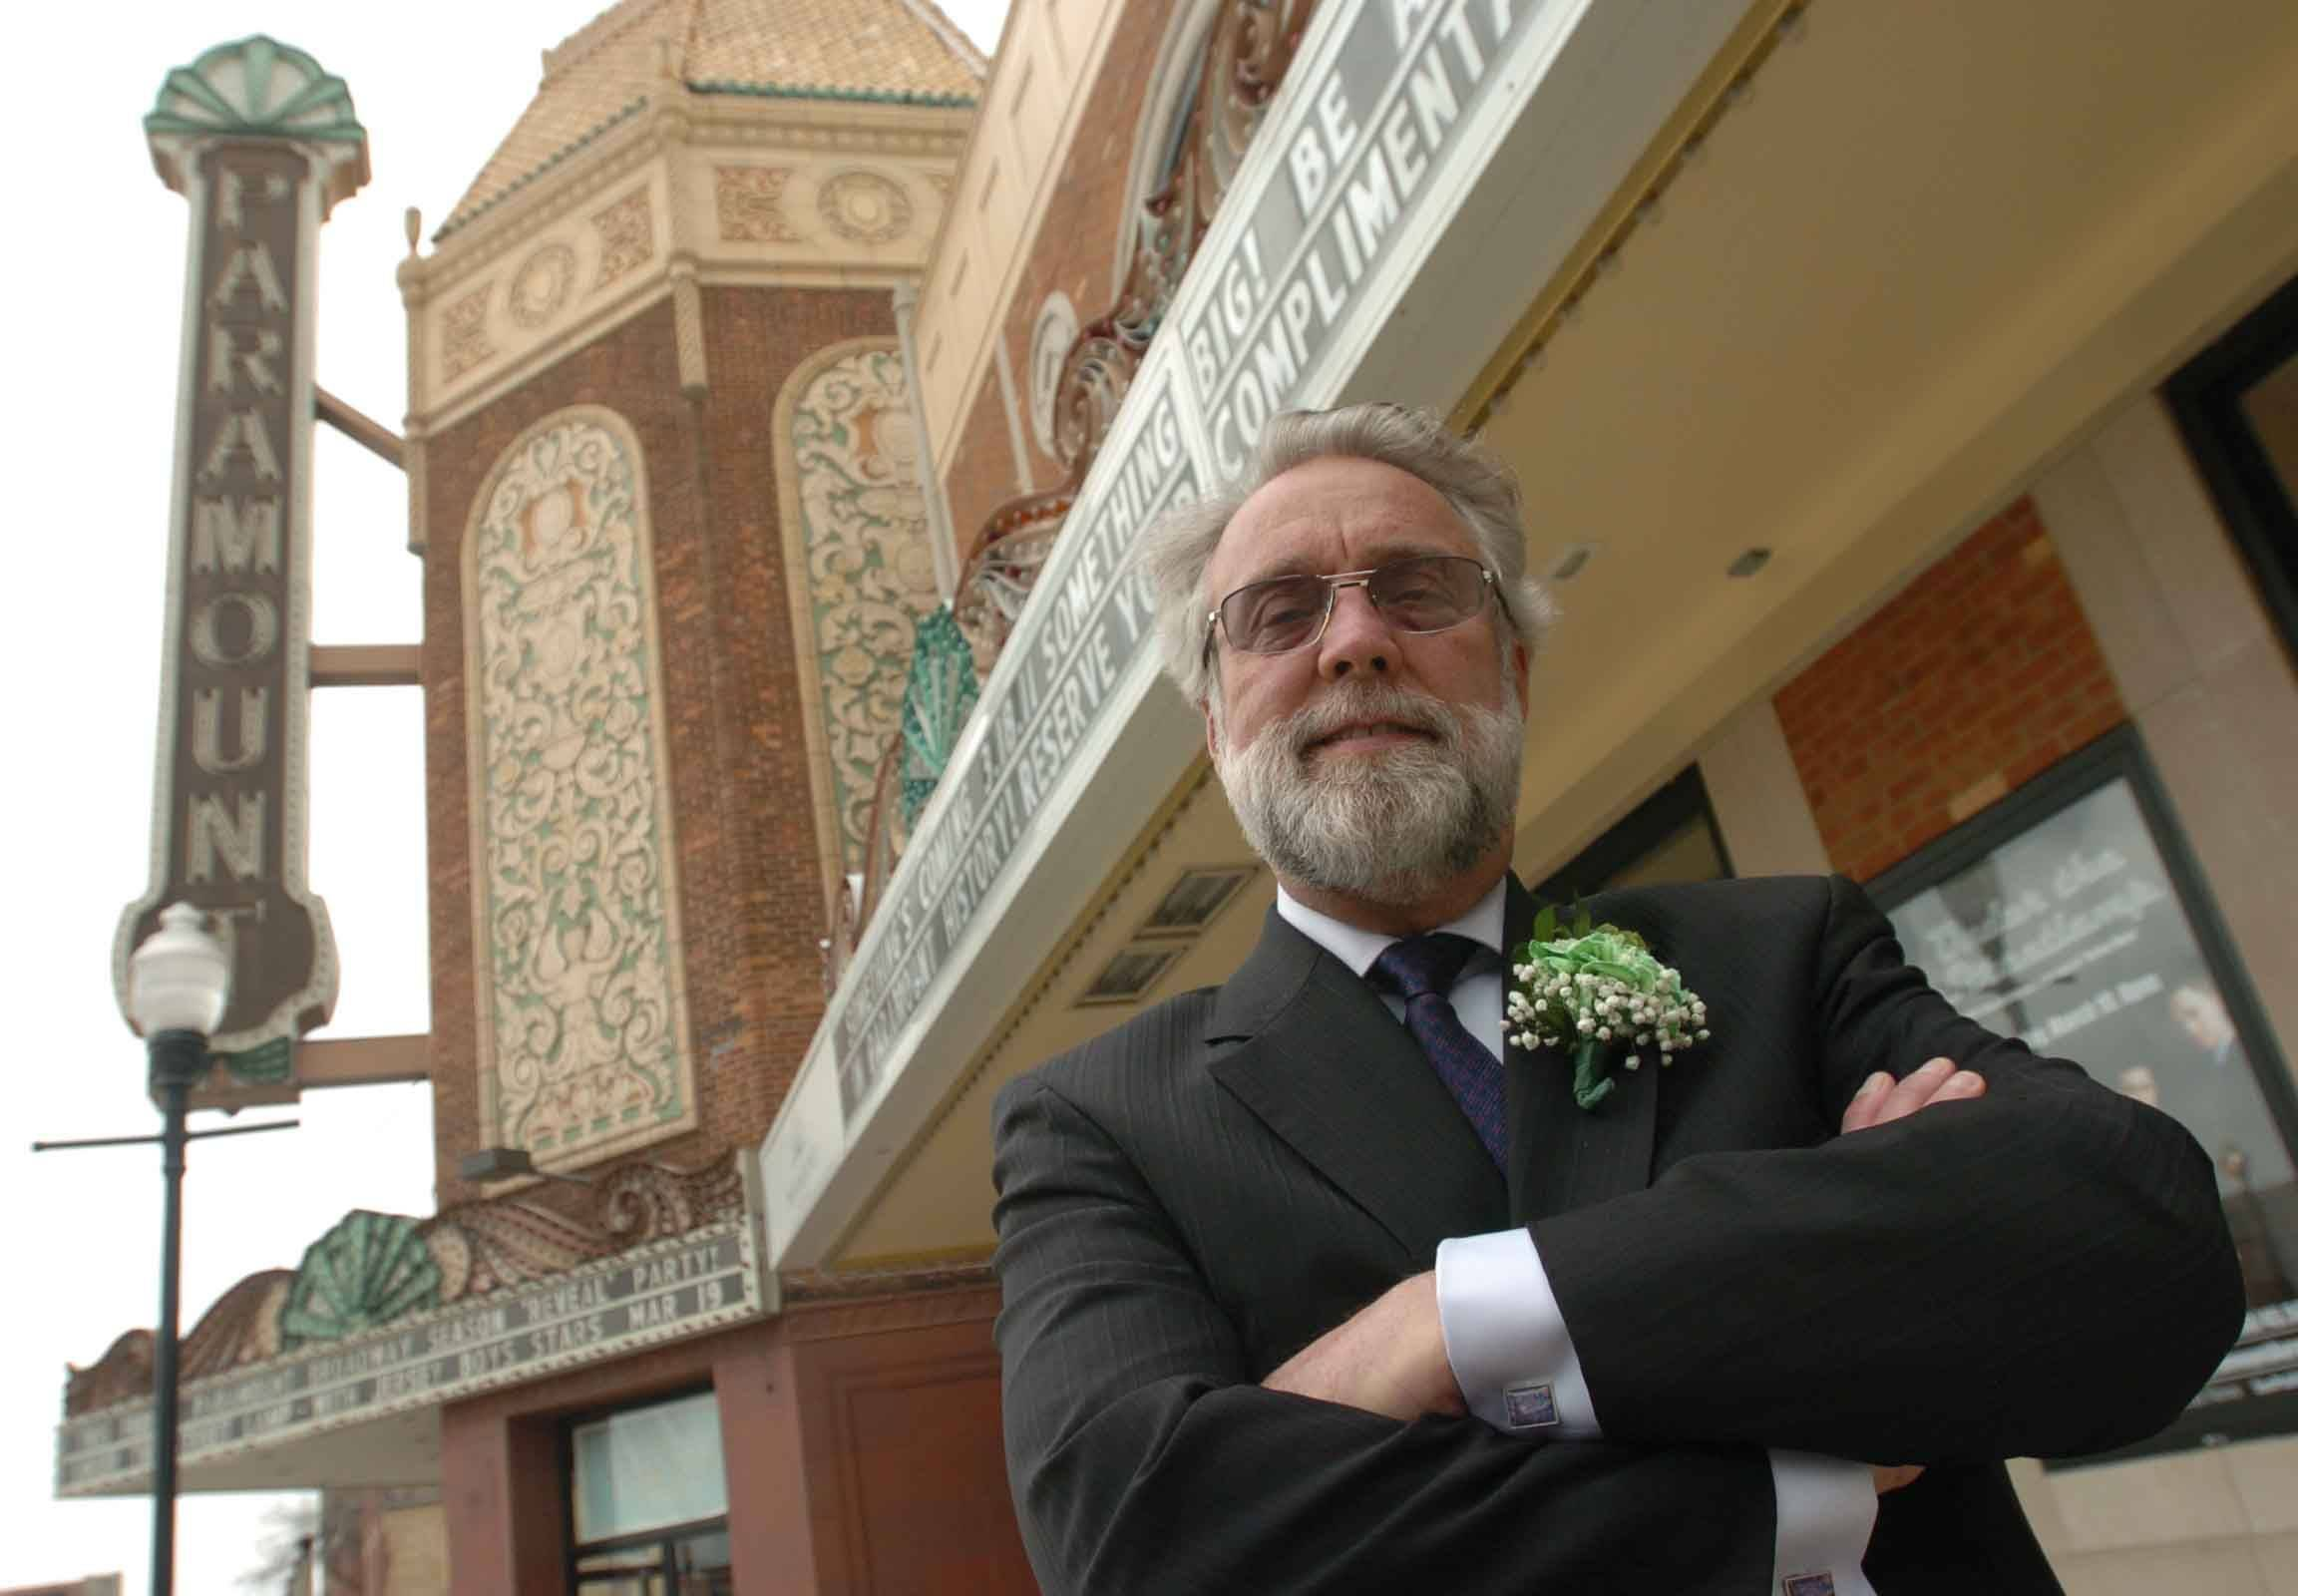 A business round-table Aurora mayor Tom Weisner created in January is working on an economic development plan in hopes of finishing it by the end of the year and implementing it in 2012.